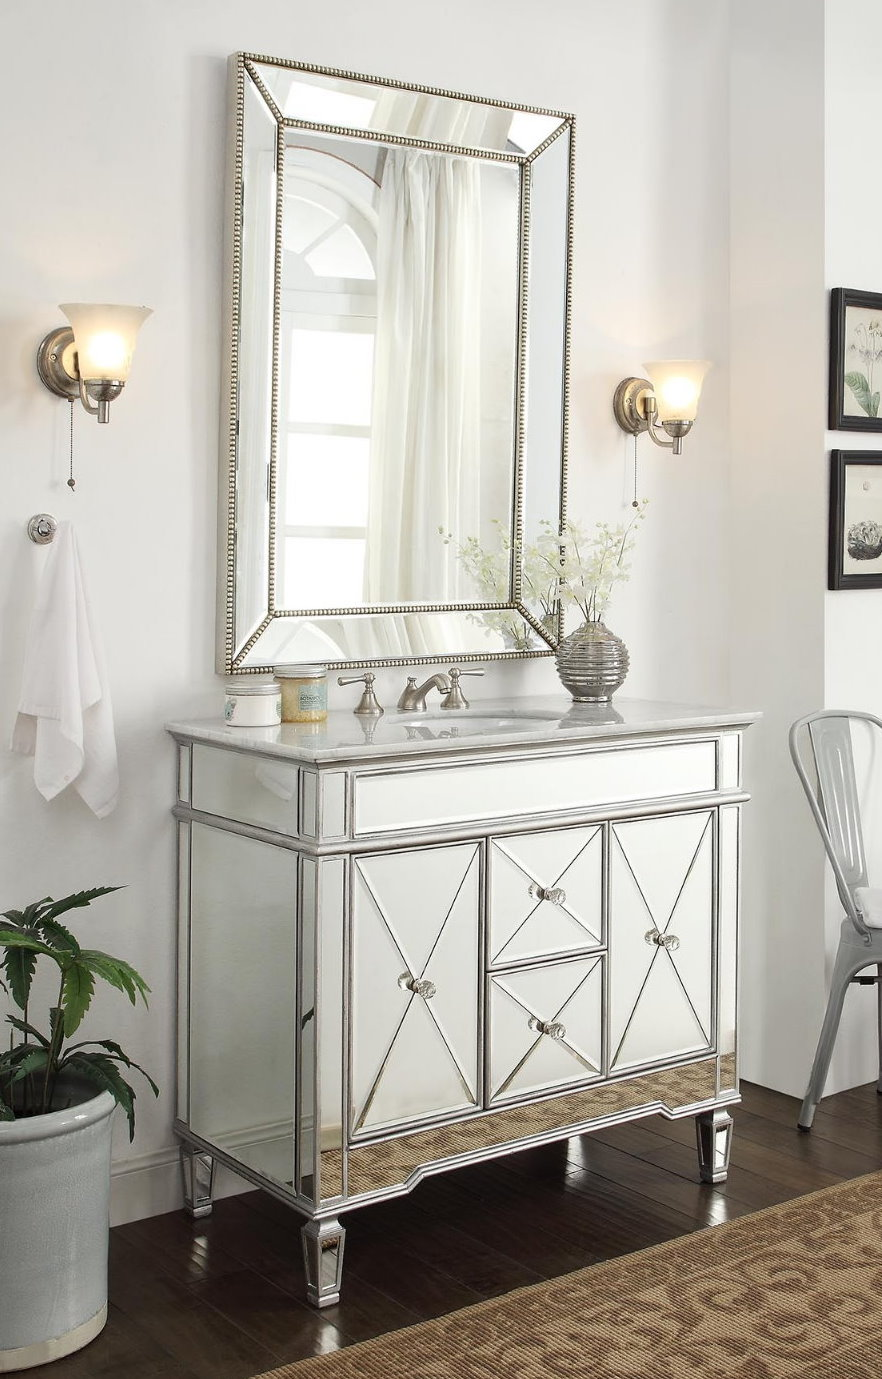 adelina 44 inch mirrored bathroom vanity cabinet fully assembled white marble counter top